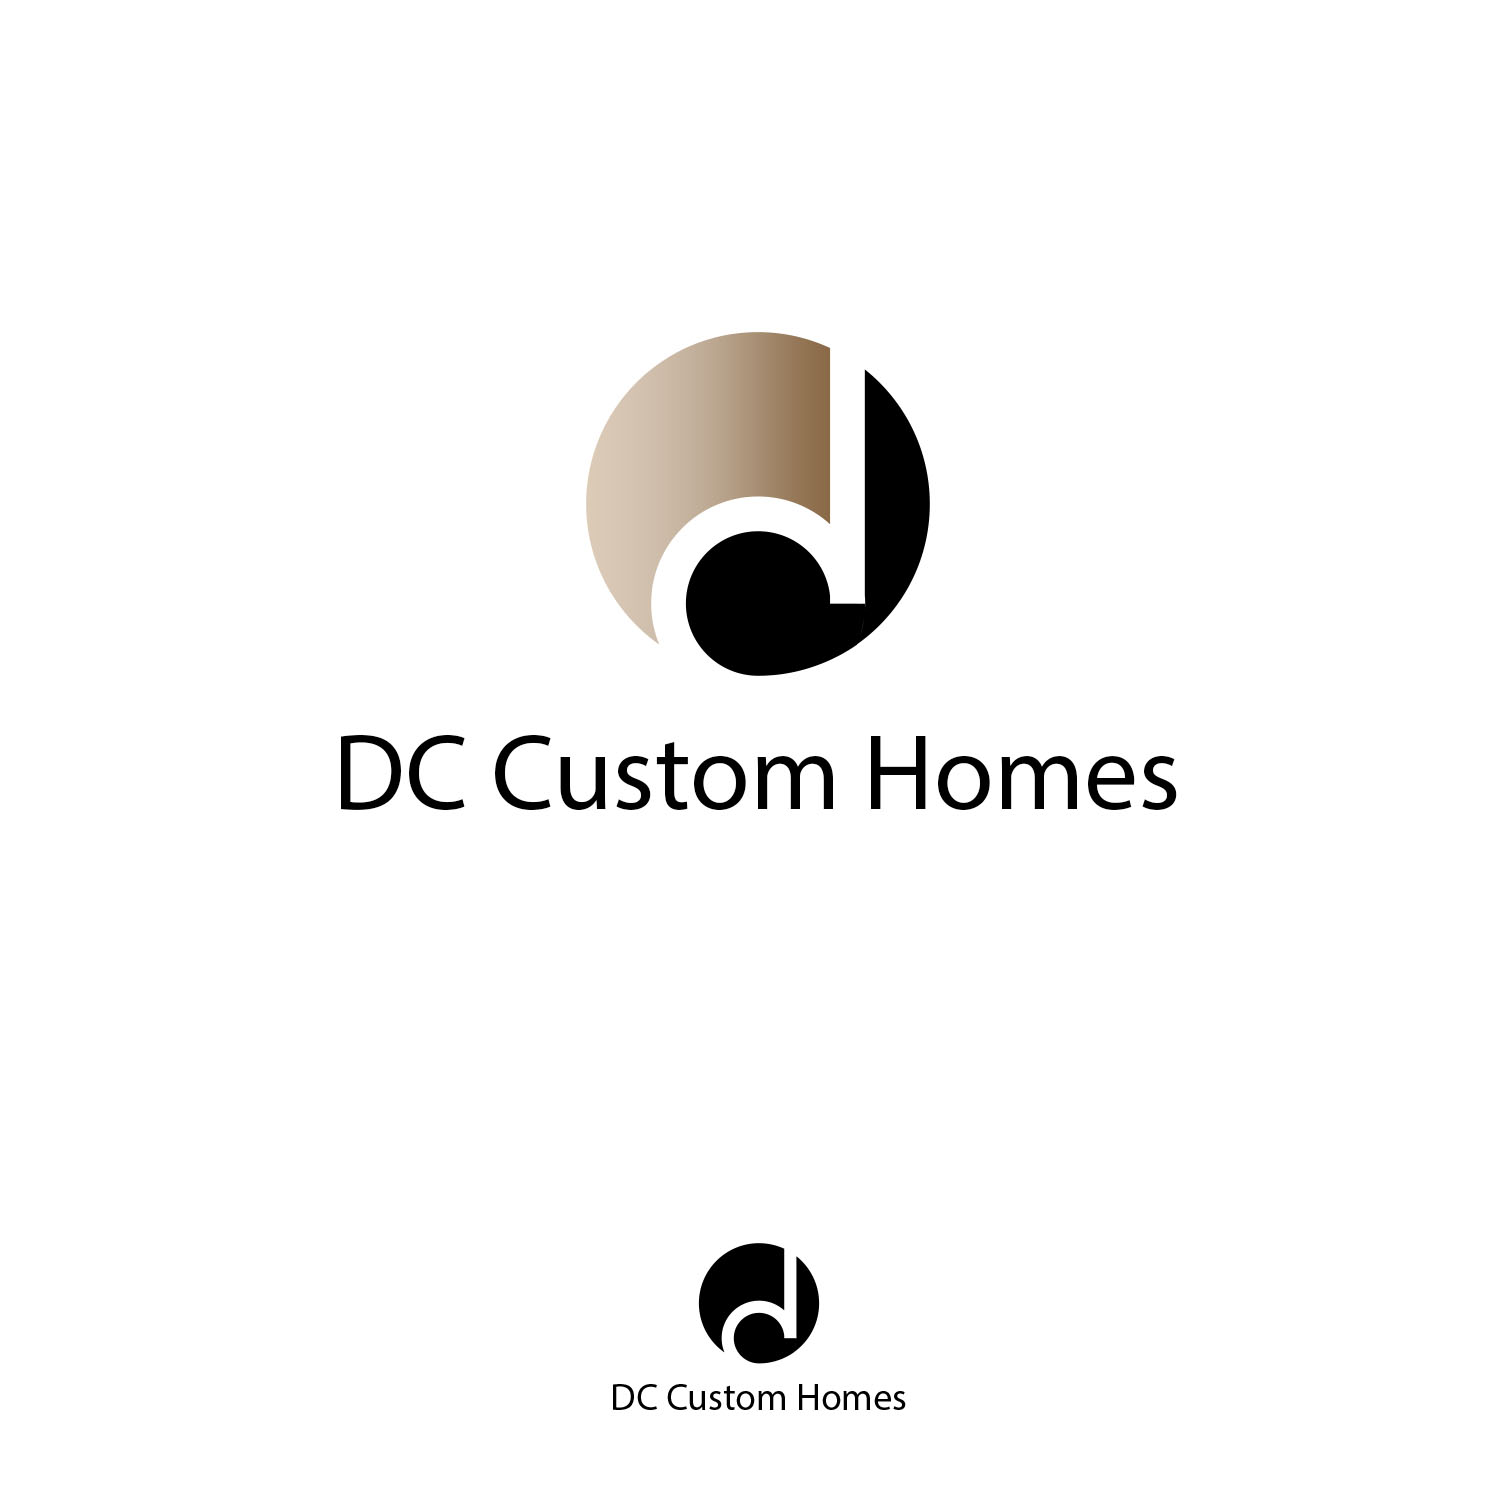 Logo Design by Private User - Entry No. 141 in the Logo Design Contest Creative Logo Design for DC Custom Homes.